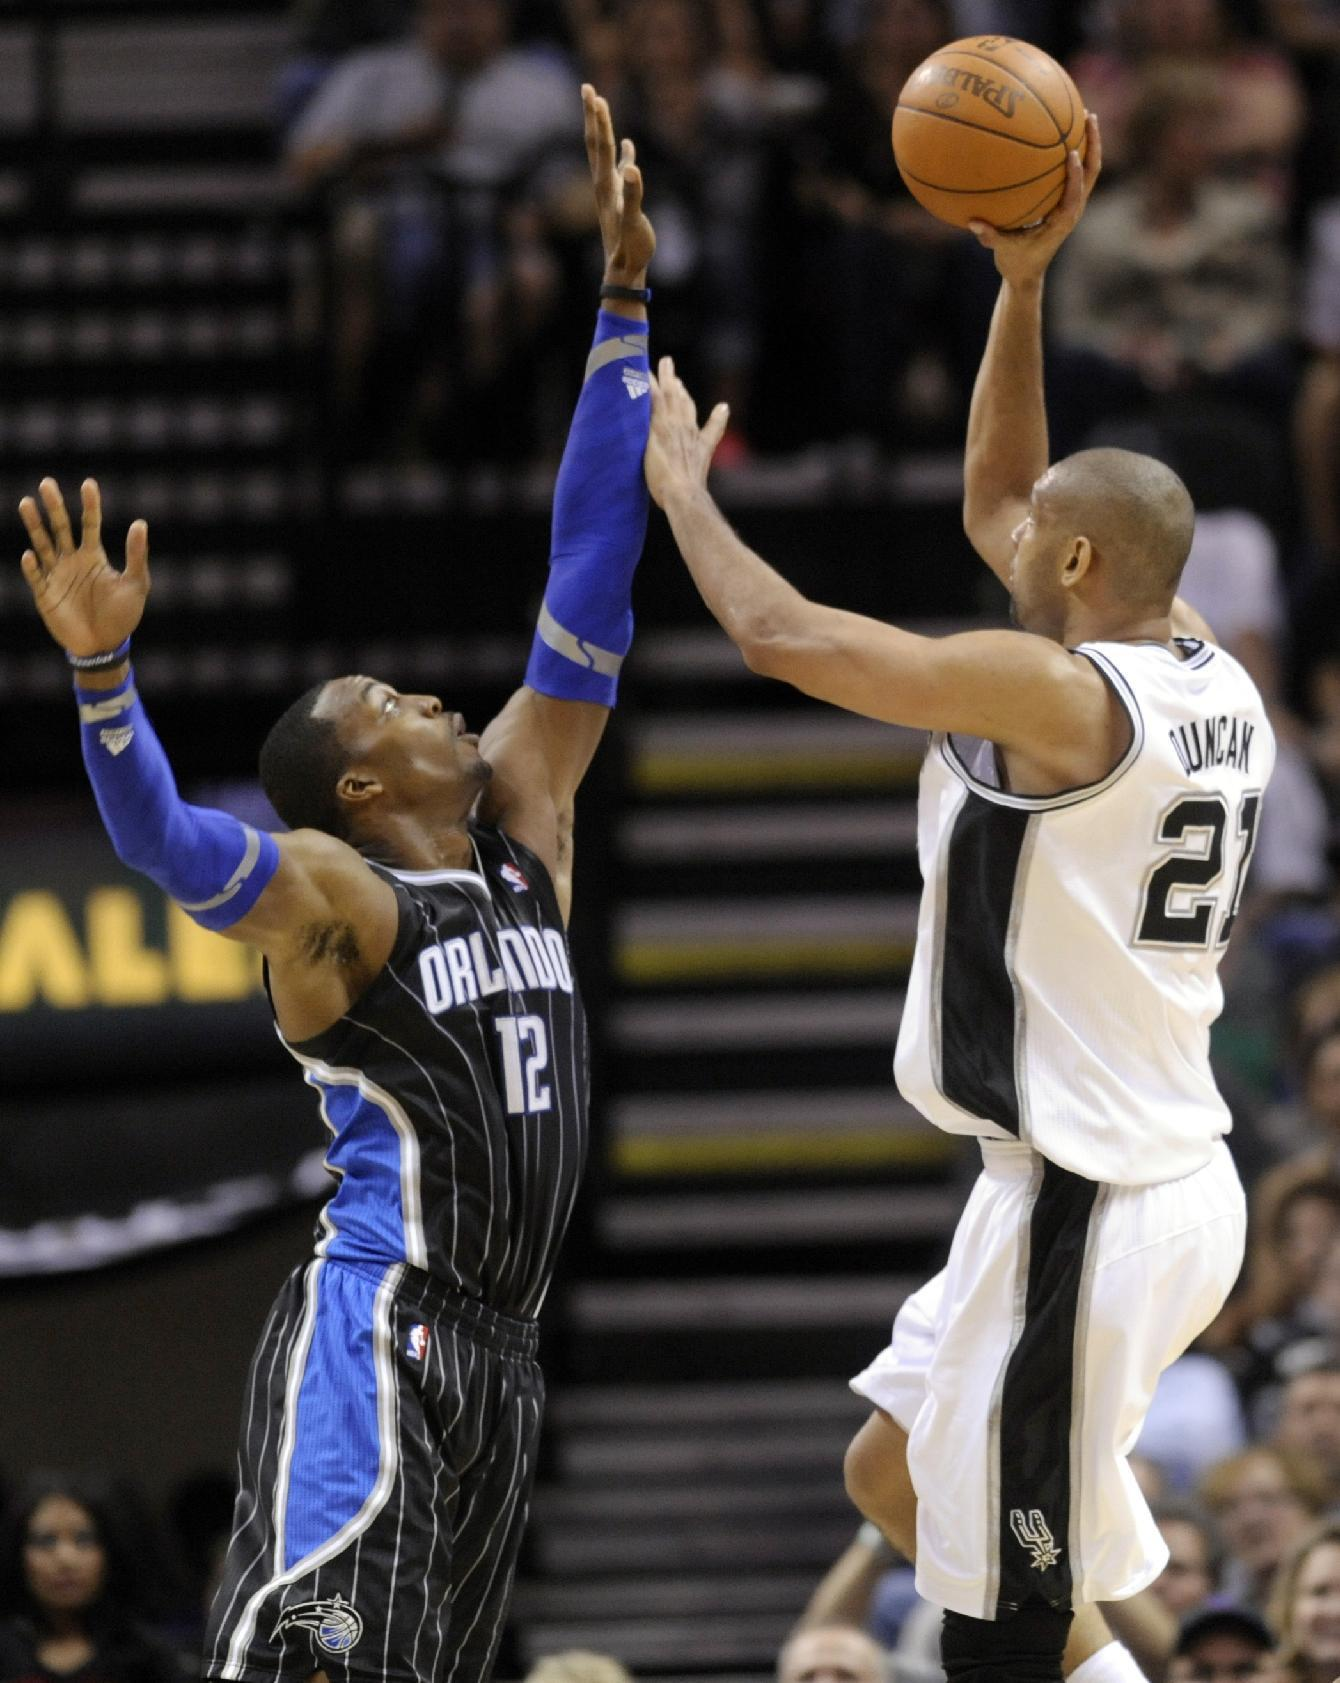 San Antonio Spurs forward Tim Duncan shoots over Orlando Magic center Dwight Howard during the second half of an NBA basketball game Wednesday, March 14, 2012, in San Antonio. The Spurs won 122-111. (AP Photo/Bahram Mark Sobhani)